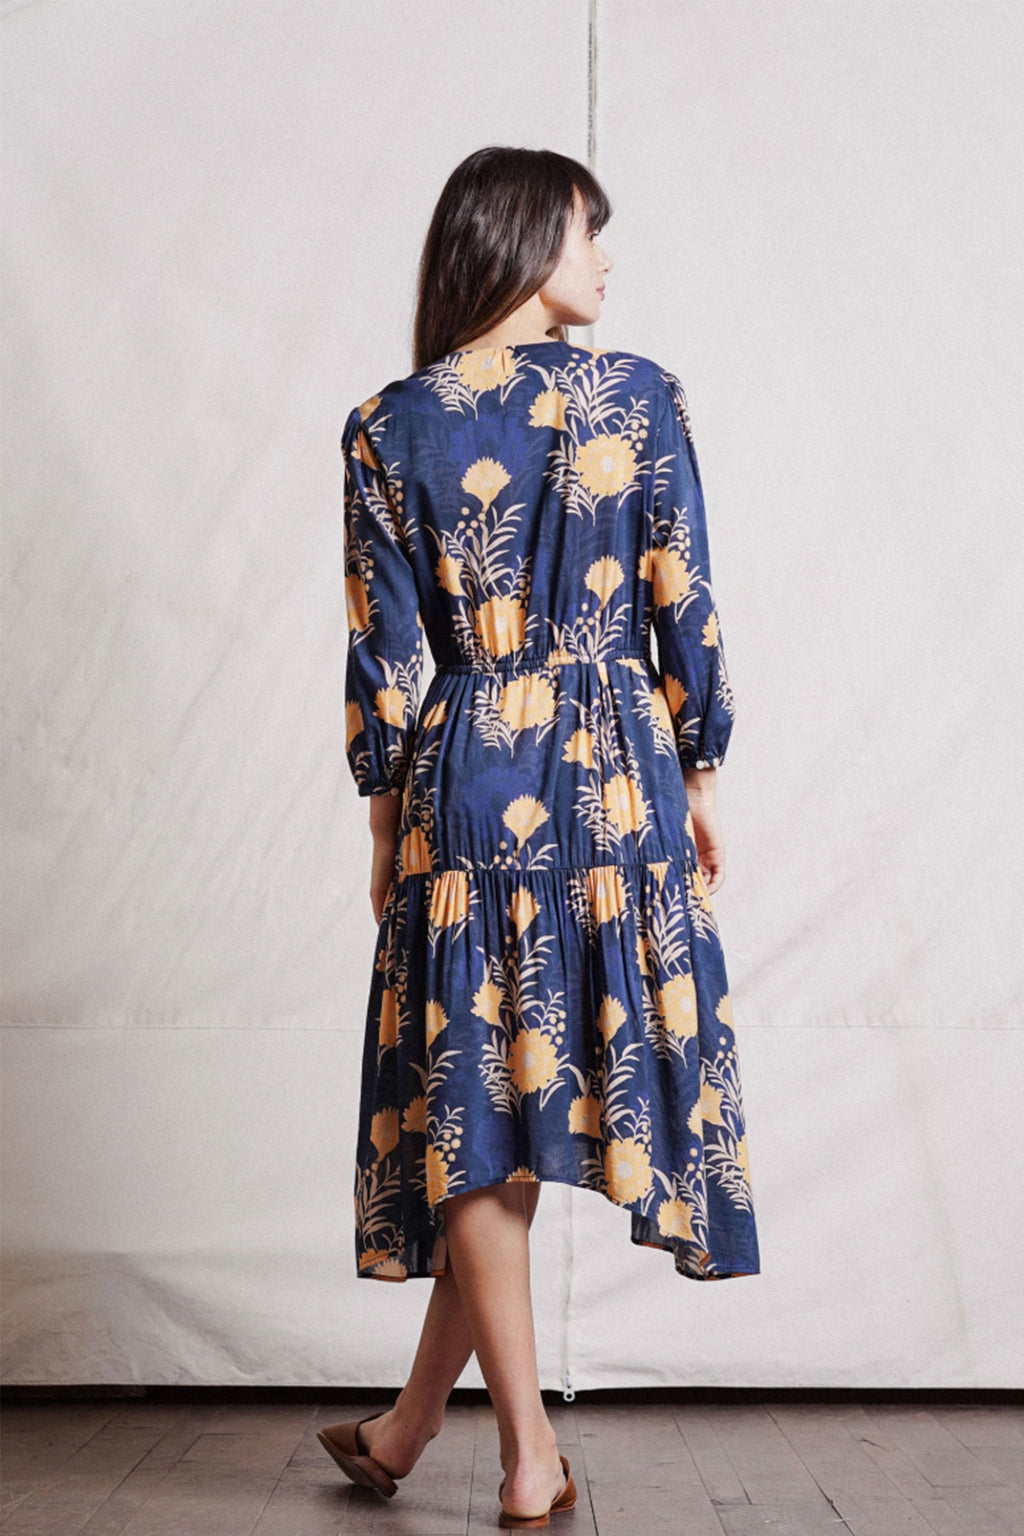 Trovata Ainsley Boho Dress in Navy/Gold Floral